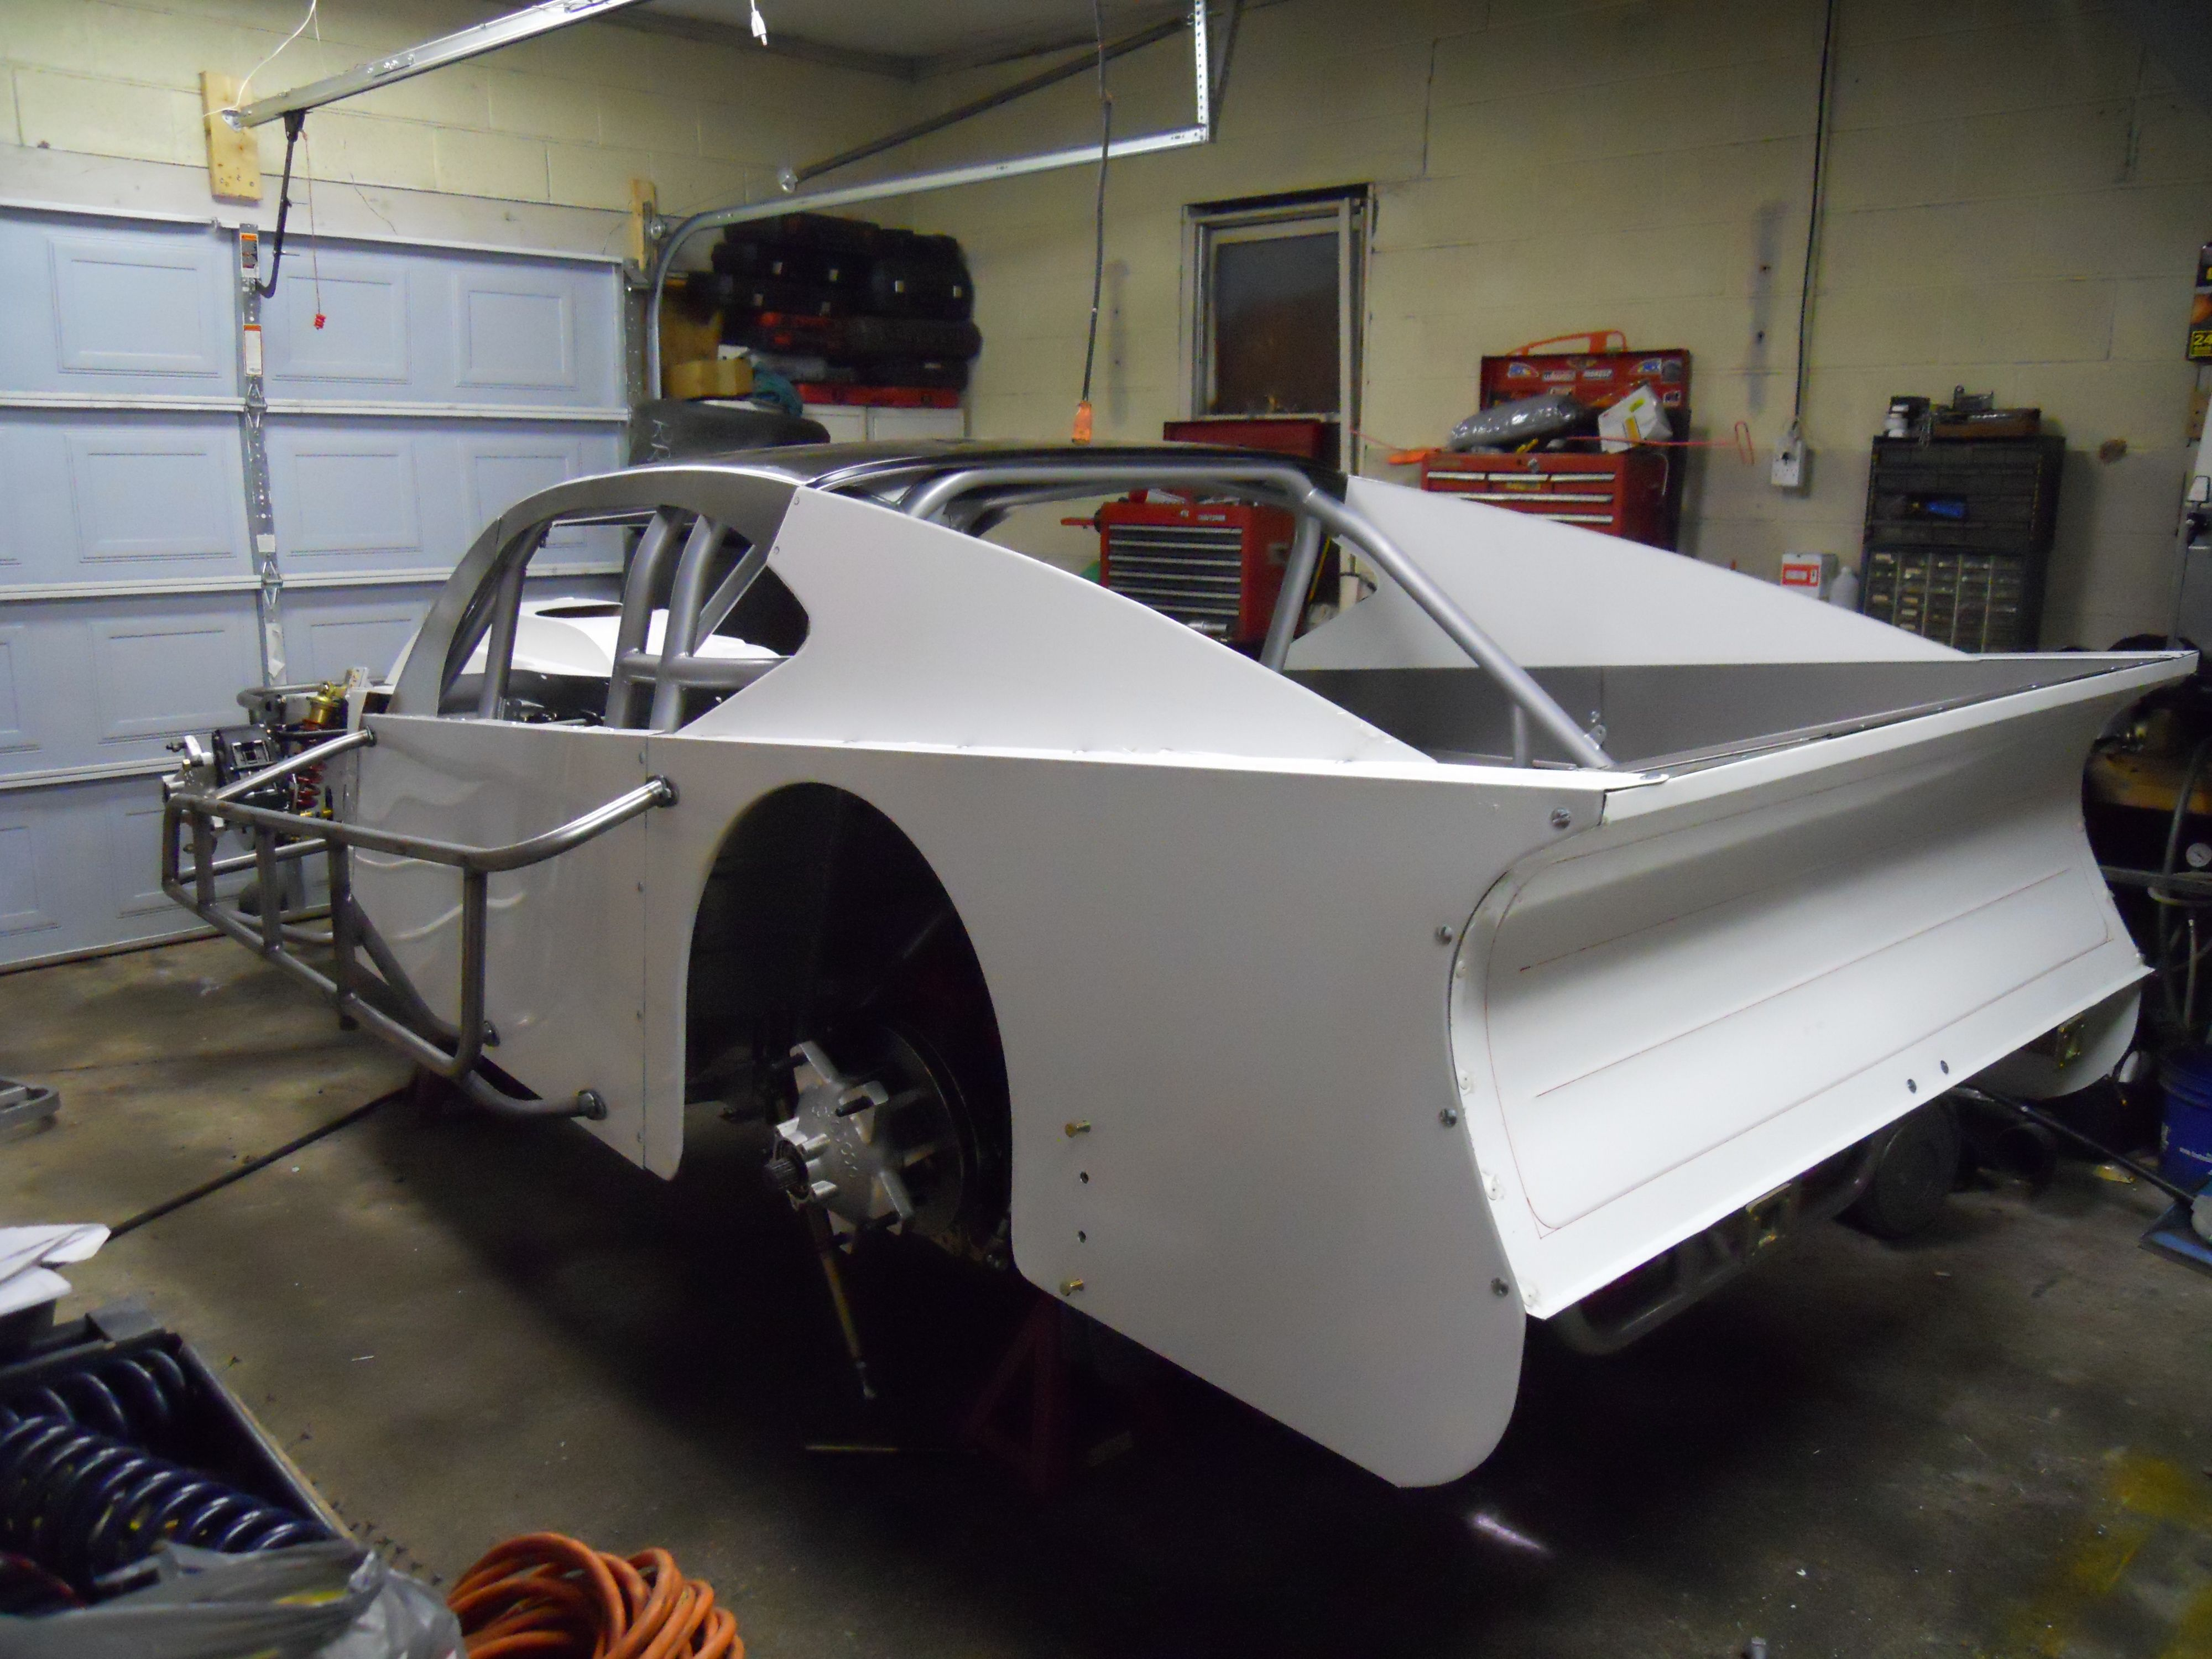 Troyer Race Cars: Car, Race Cars, Vehicles